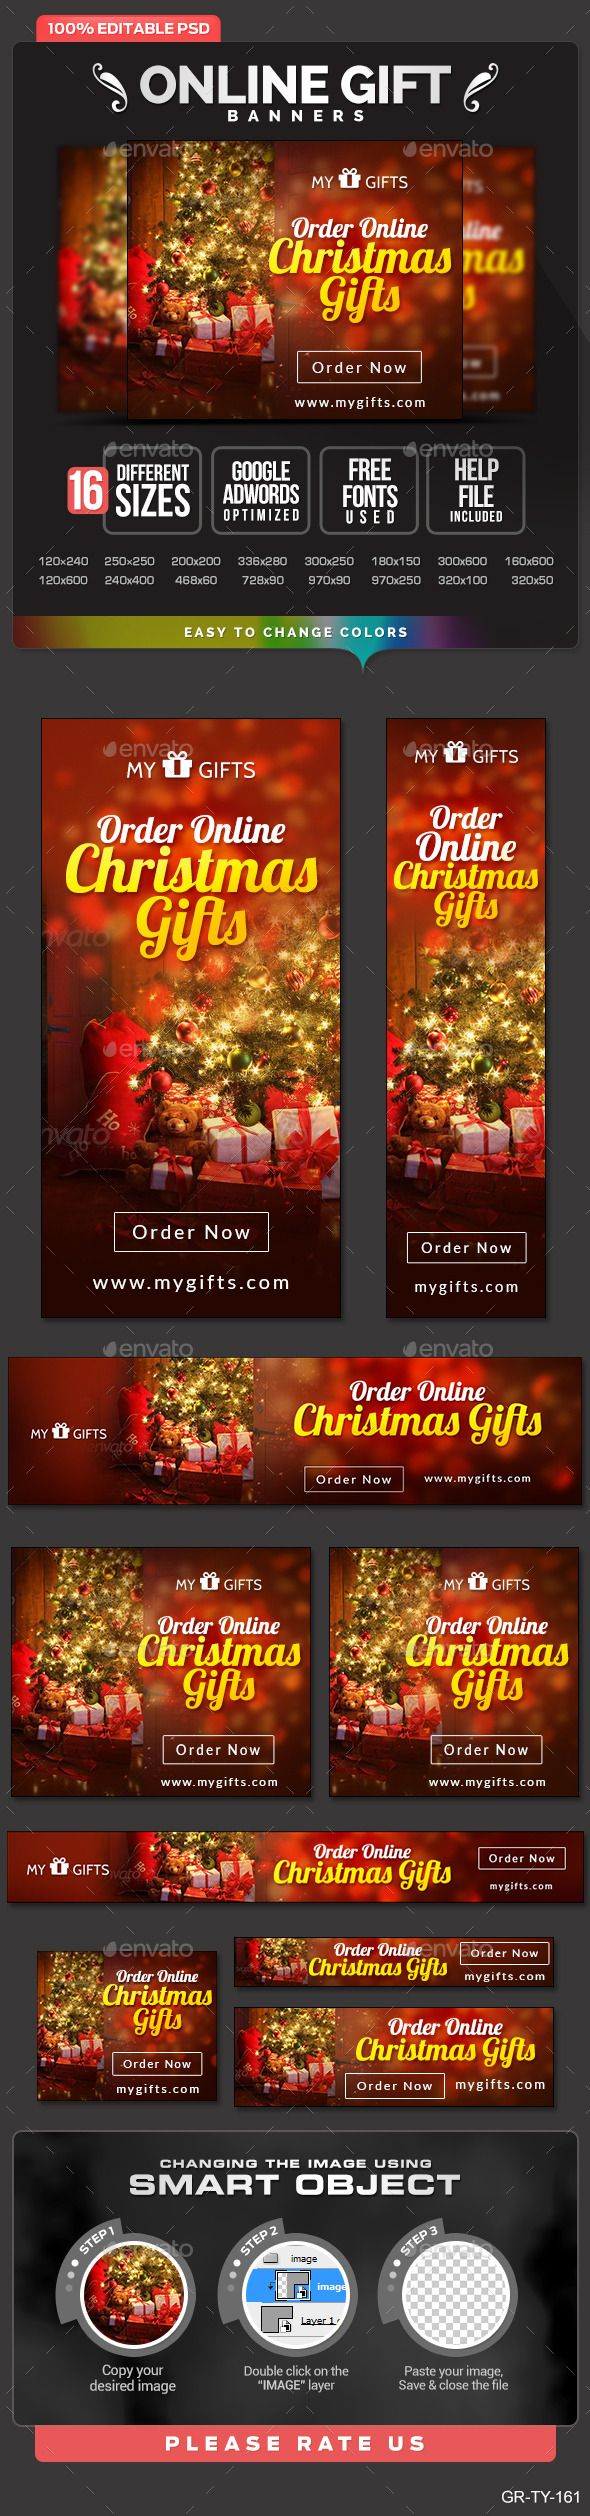 Digital banner design for psd files - Promote Your Products And Services Related To Gifts Niche With This Great Looking Banner Set 16 Awesome Quality Banner Template Psd Files Ready For Your